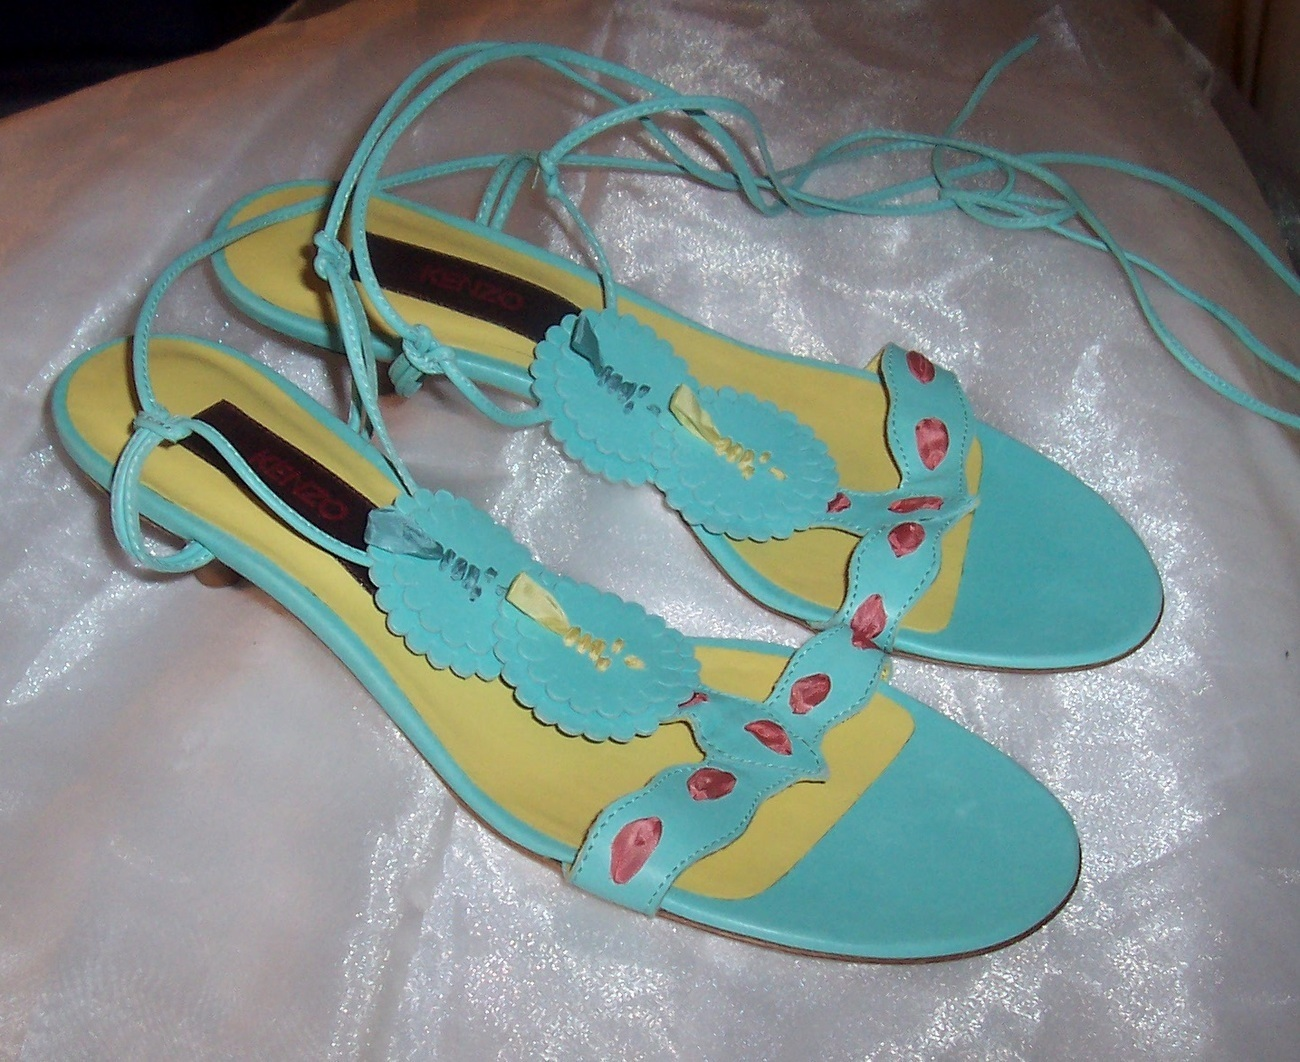 New KENZO Tiffany Blue Laser Cut Lace-Up Shoes Retail $485 Sz 37 ITALY Festival